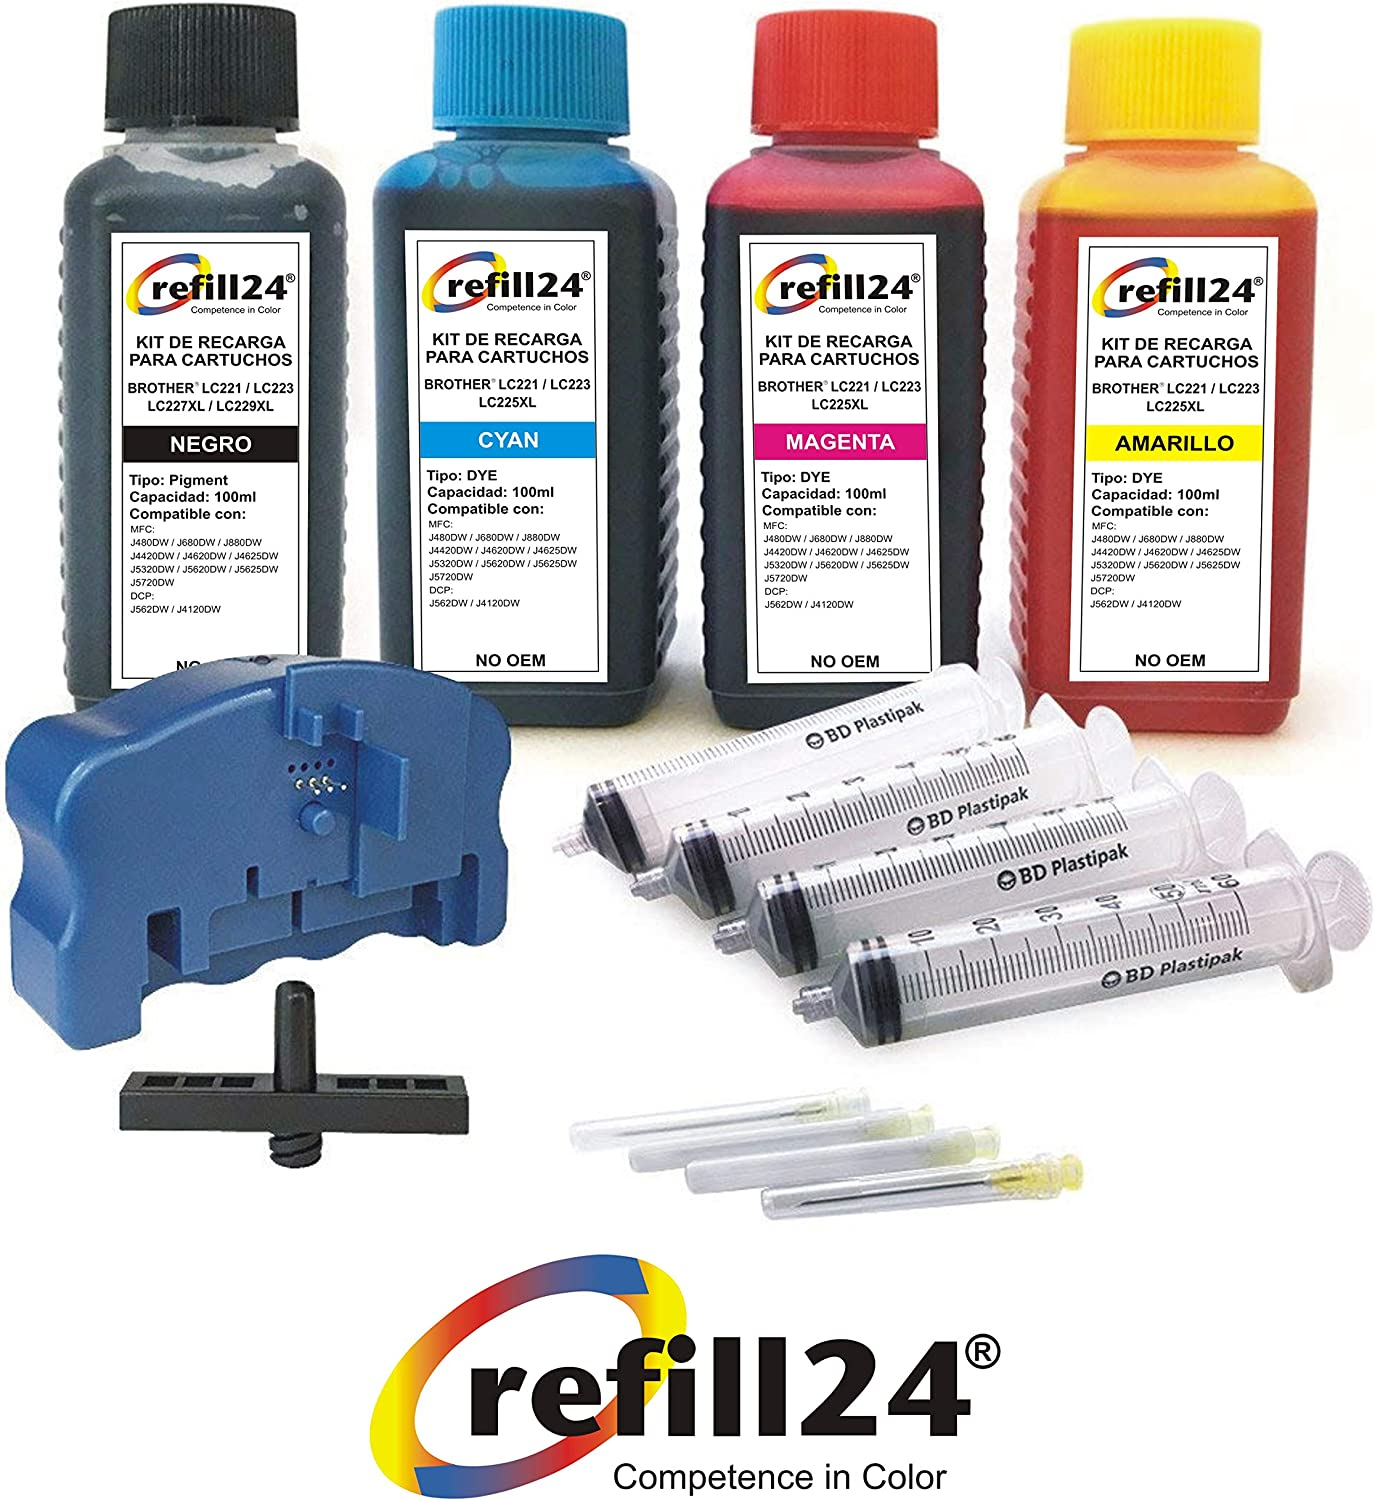 Kit de Recarga para Cartuchos de Tinta Brother 221, 223, 225XL ...